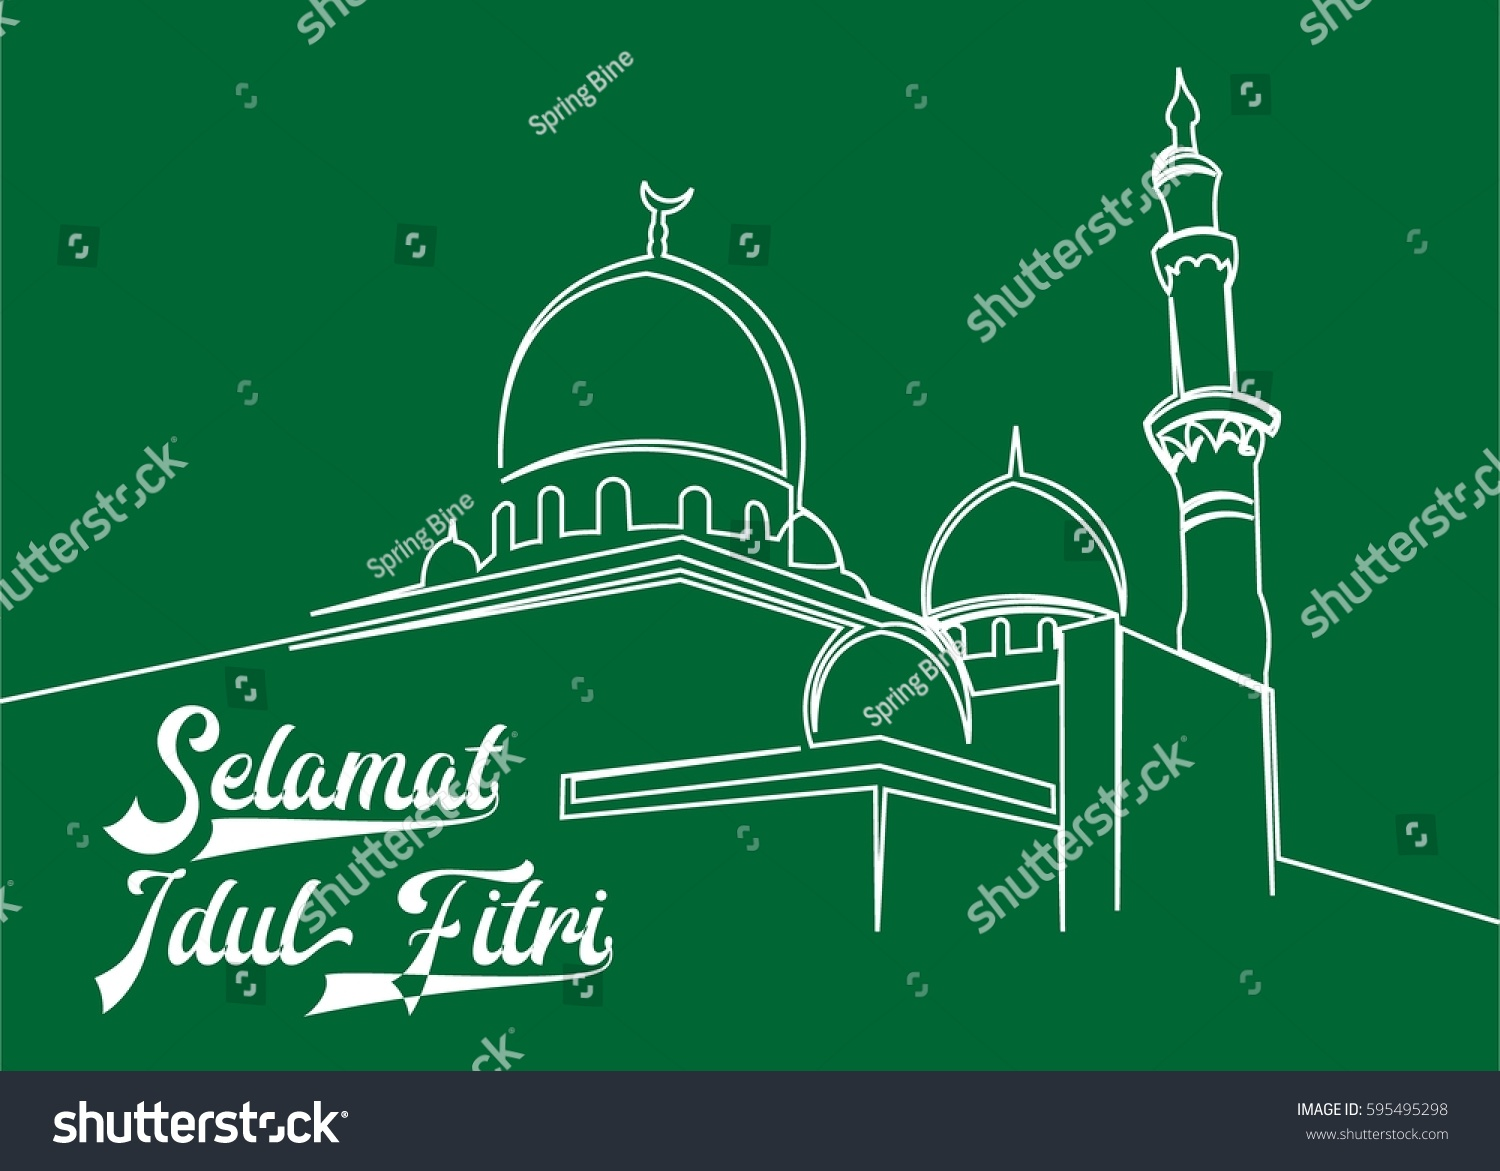 Continuous line drawing mosque greeting selamat stock vector continuous line drawing of mosque with greeting for selamat idul fitri with translate kristyandbryce Images